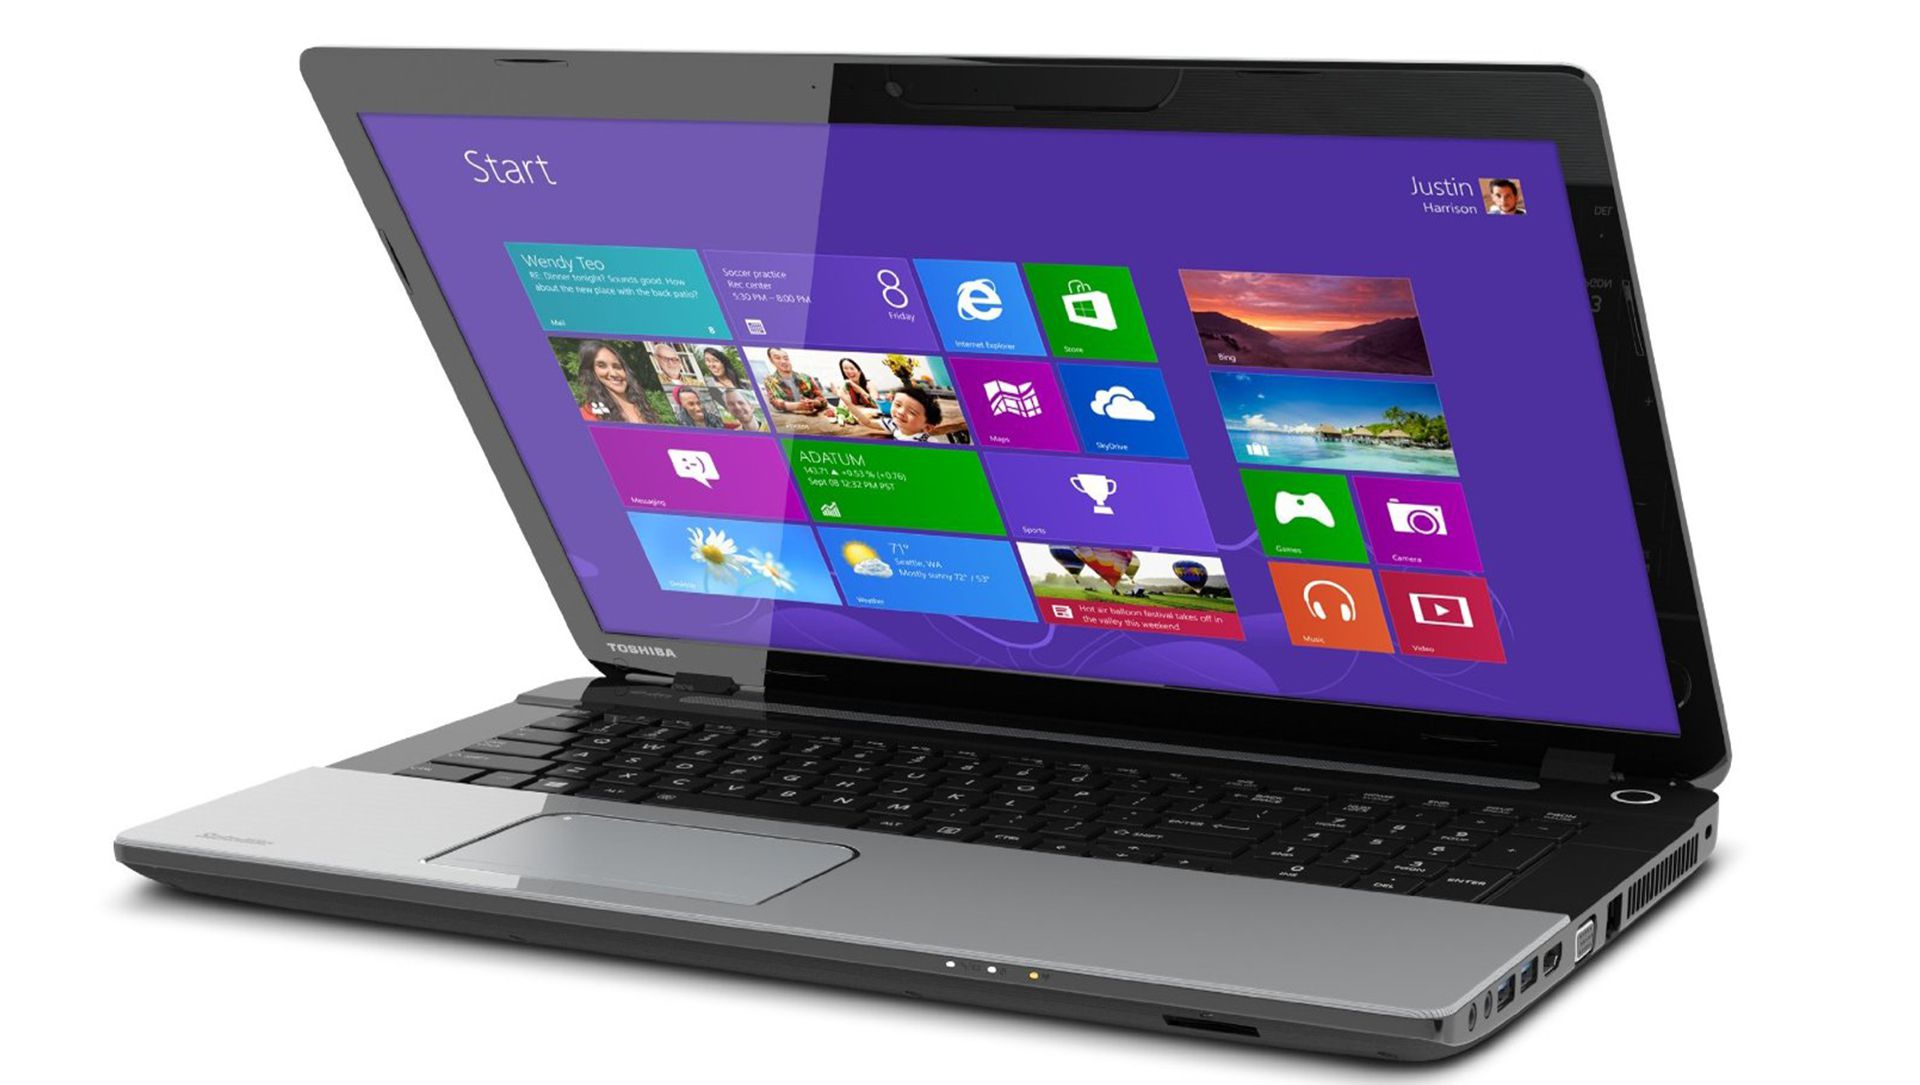 Toshiba Satellite L75 Drivers for Windows XP